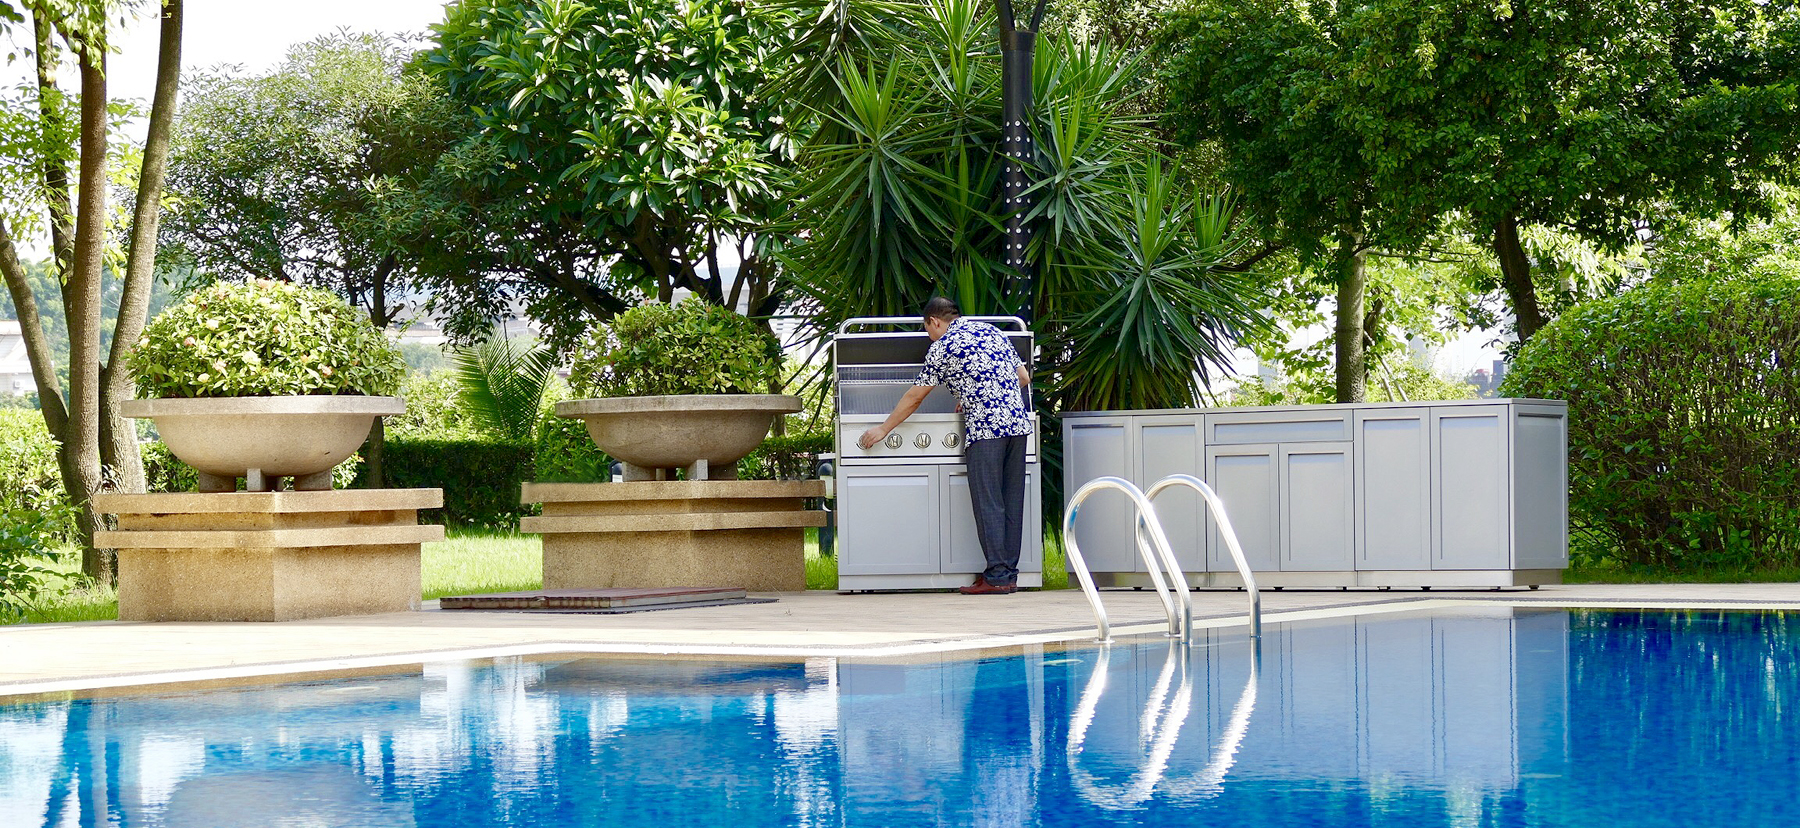 4 Life Outdoor Cabinets Set Gray By Pool With Man 4 Life